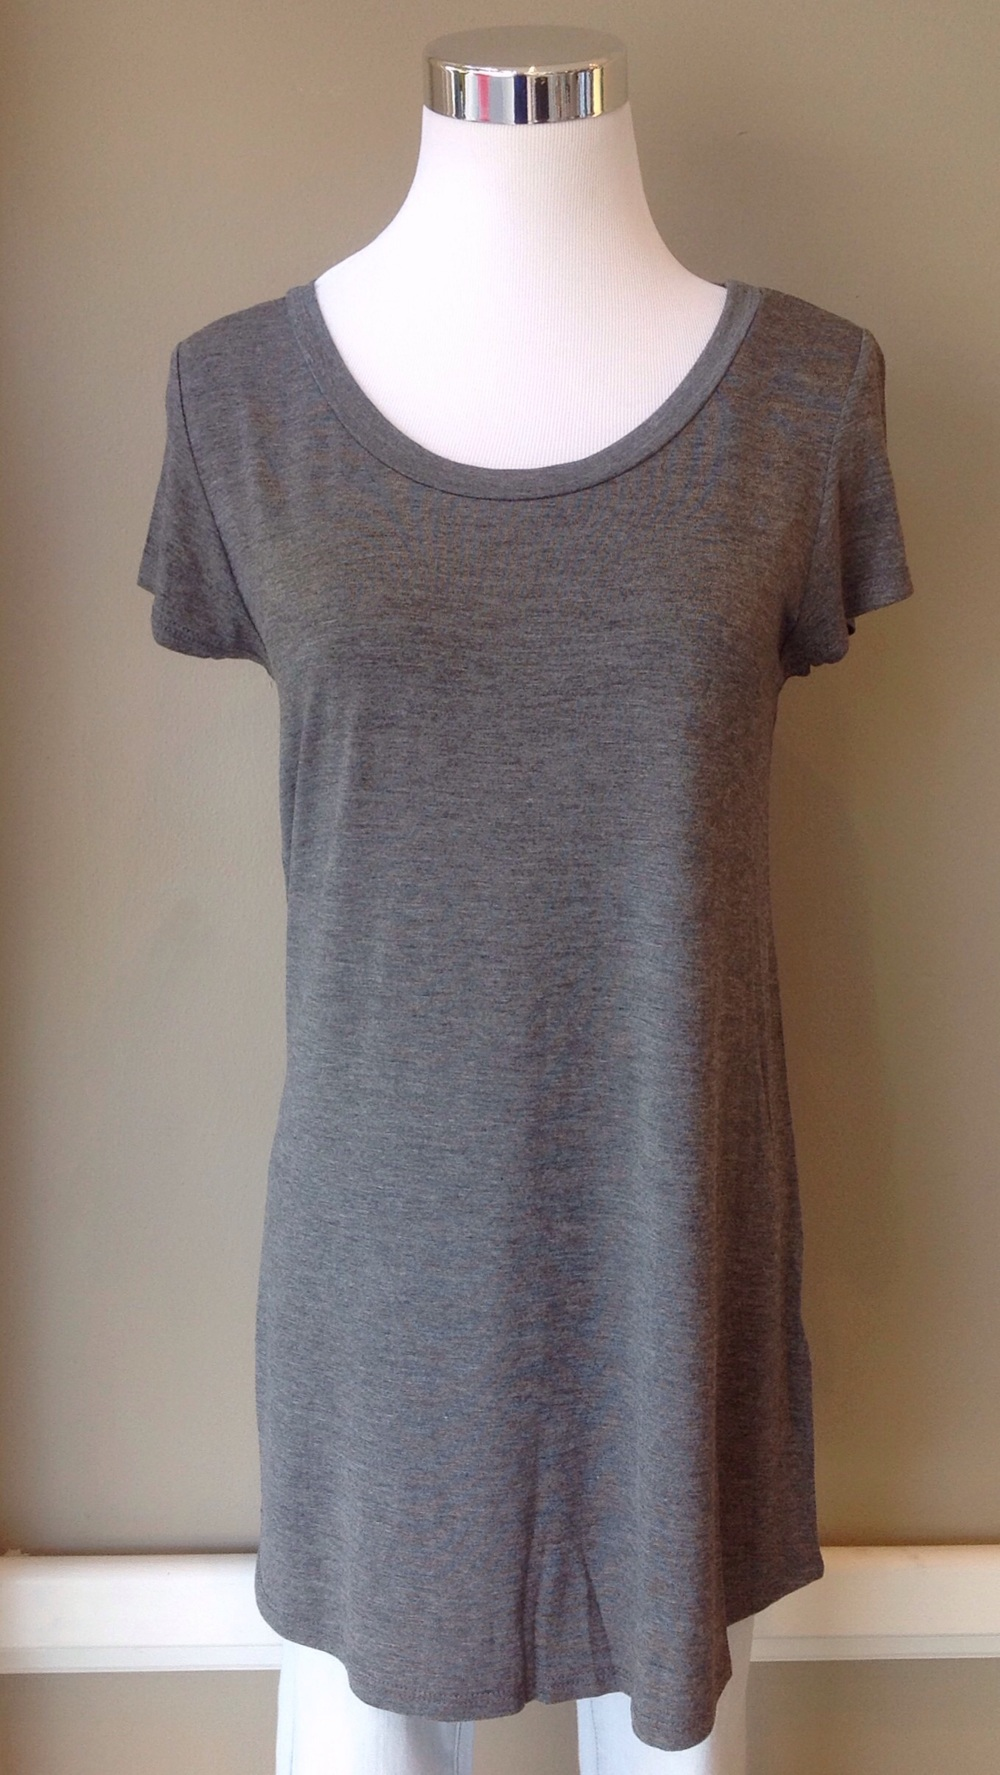 Bestselling scoop neck tee in charcoal, $24